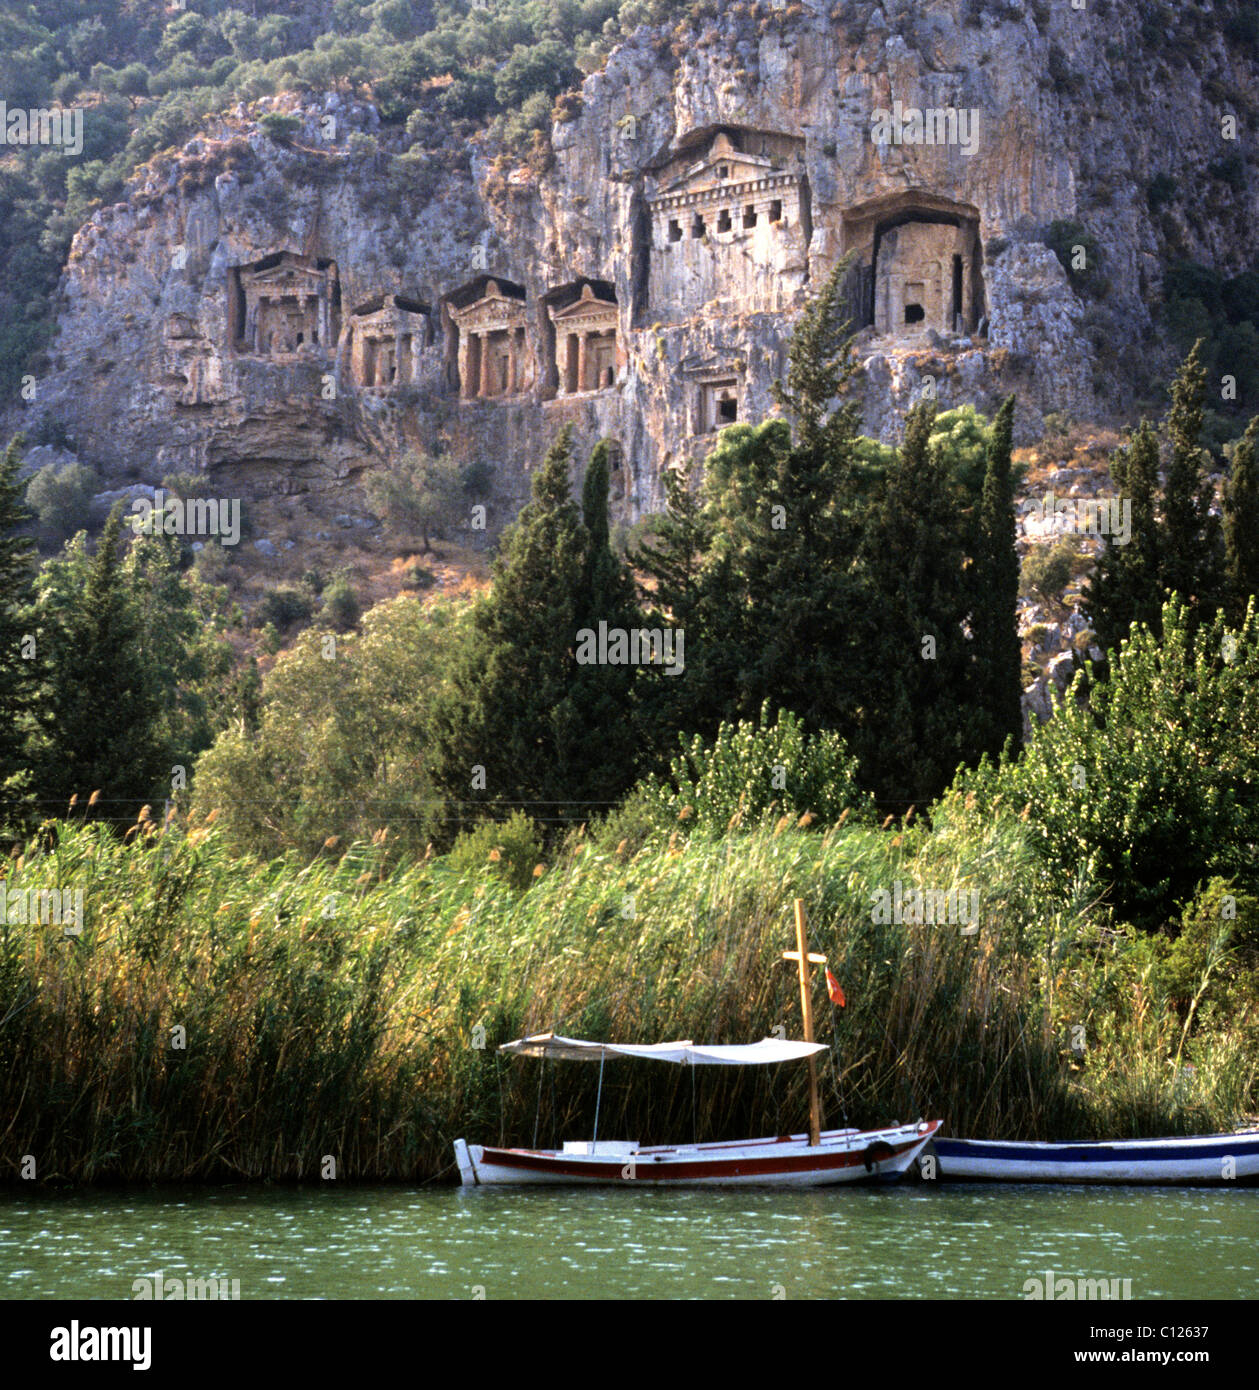 The Lycian rock tombs in the cliffs above the ruins of ...